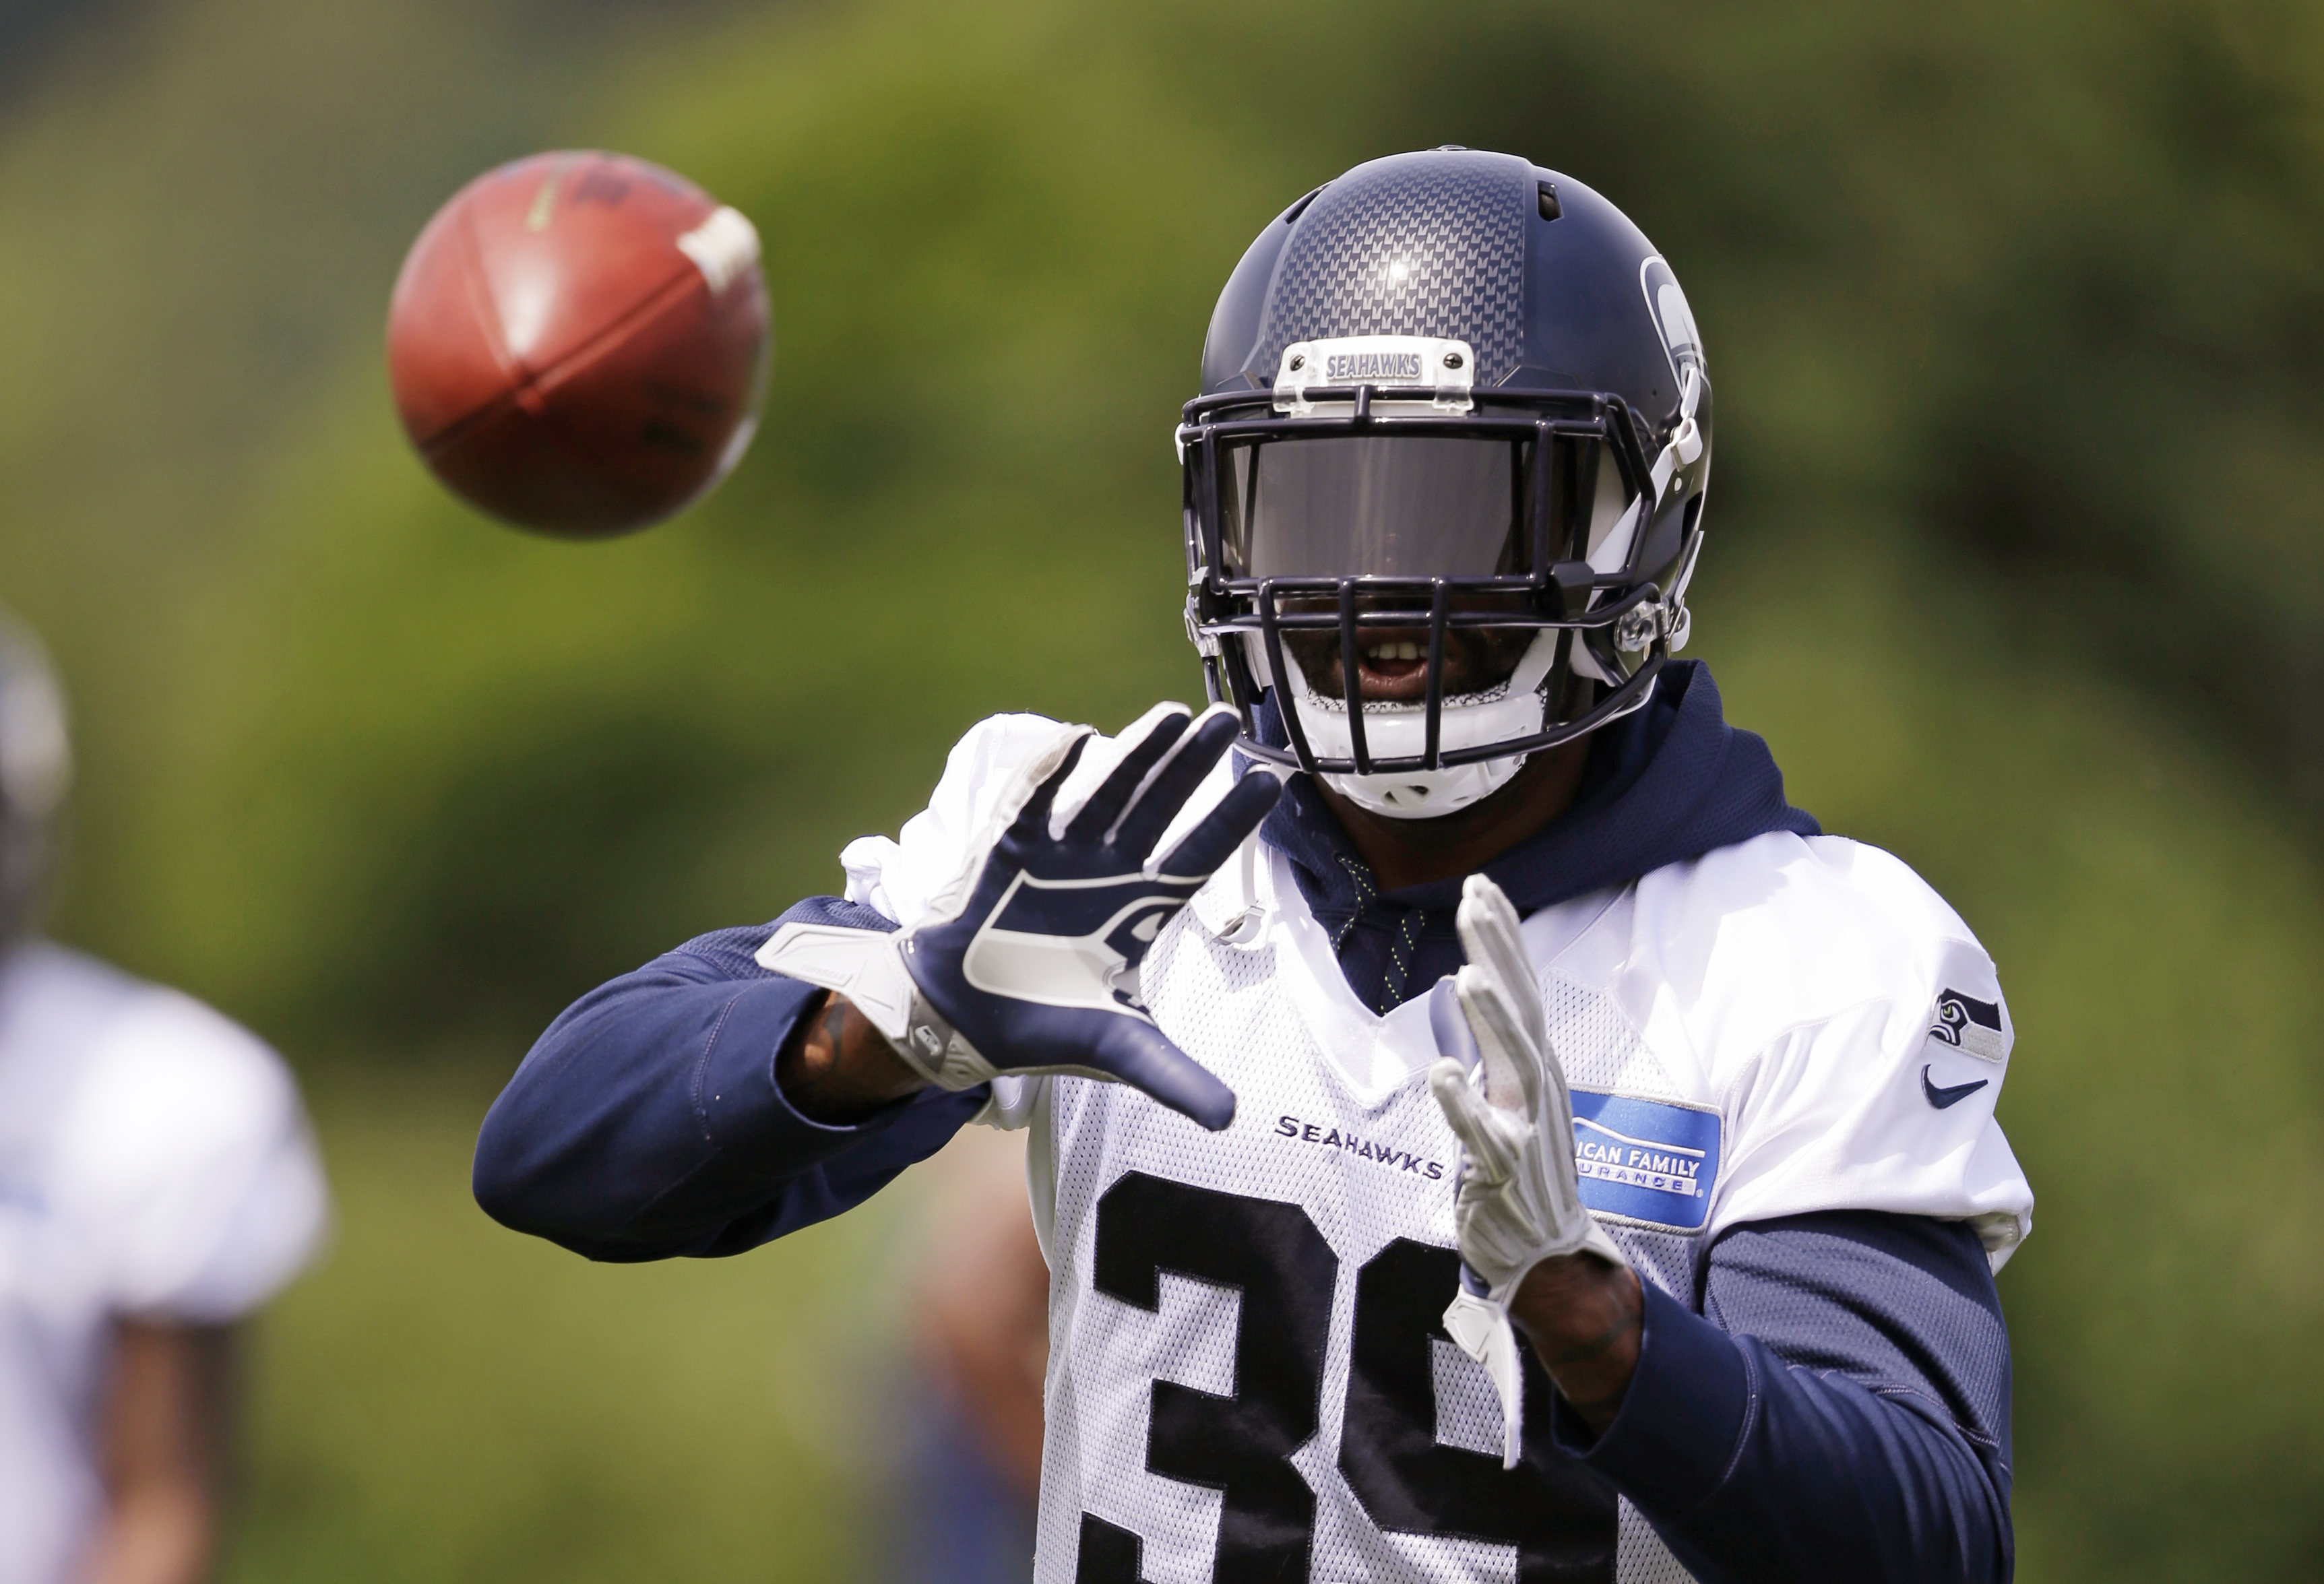 Seattle Seahawks' Brandon Browner reaches for a ball at an NFL football practice Wednesday, June 1, 2016, in Renton, Wash. (AP Photo/Elaine Thompson)